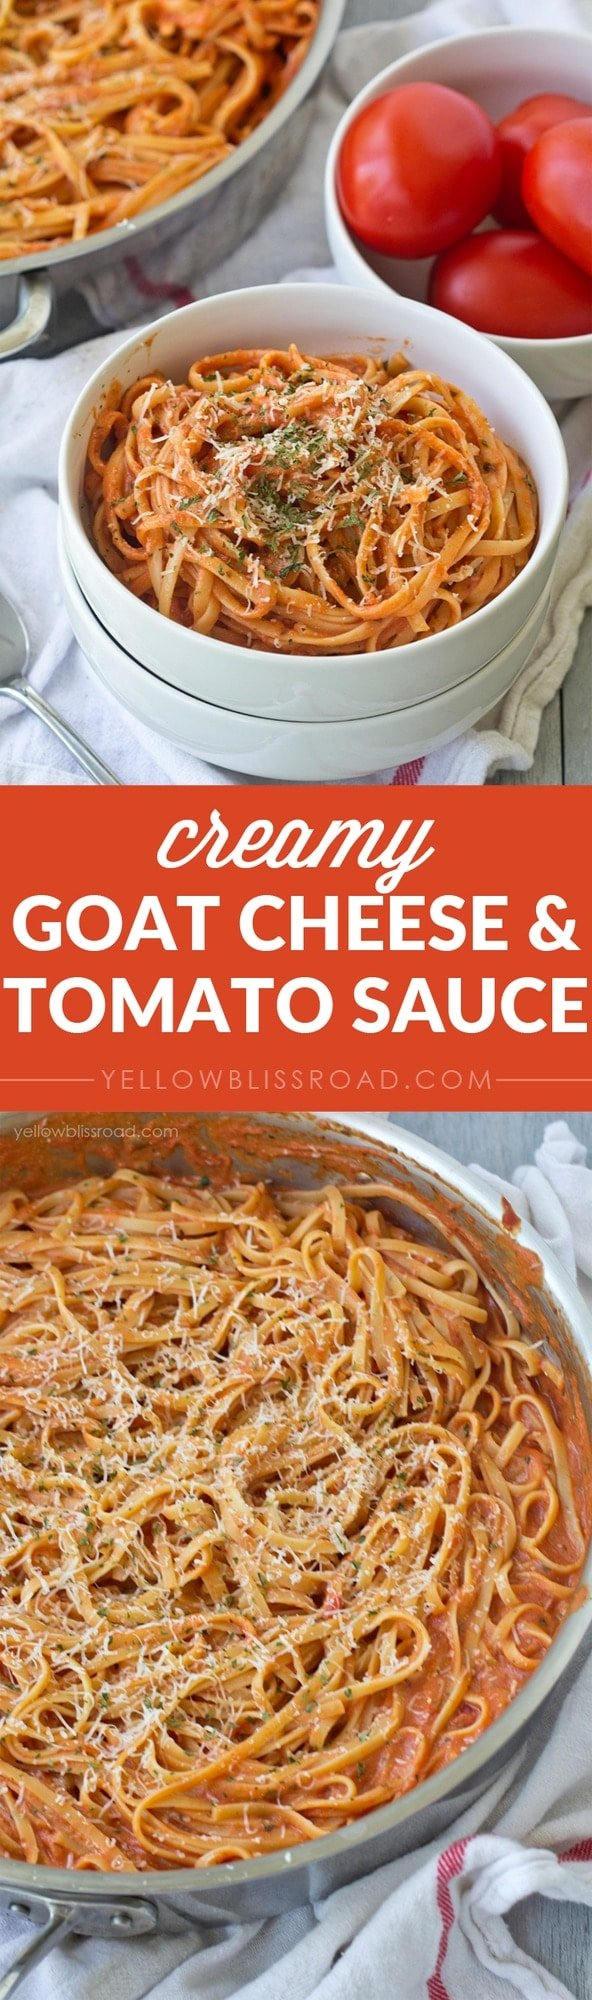 Creamy Goat Cheese & Tomato Sauce - Just two ingredients in this rich and creamy sauce!